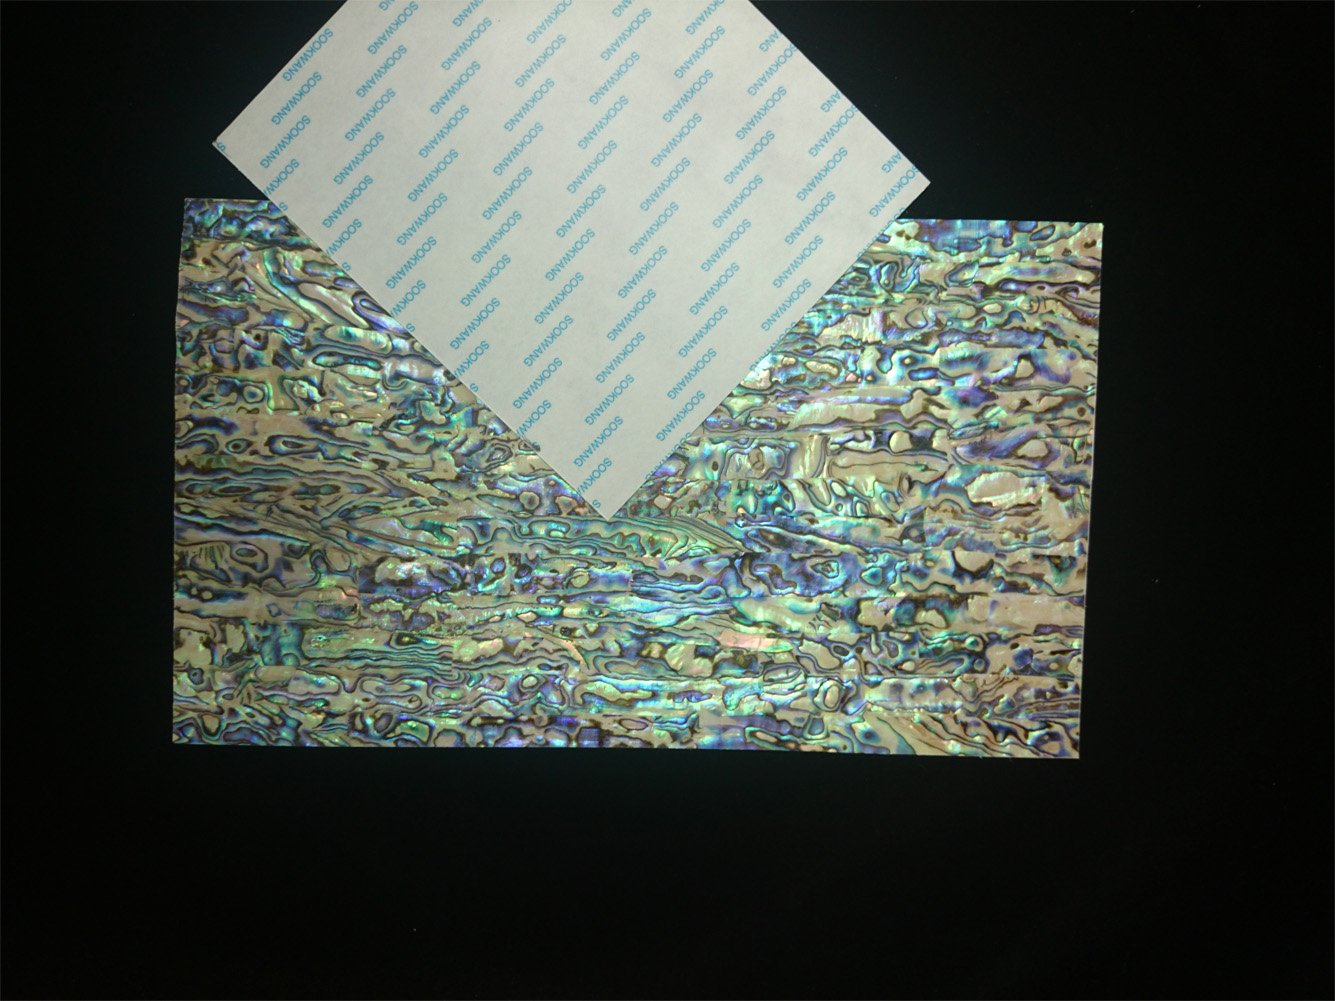 PAUA BLUE sheet (with adhesive tape) shell inlay 240 x 140 x 0.15mm